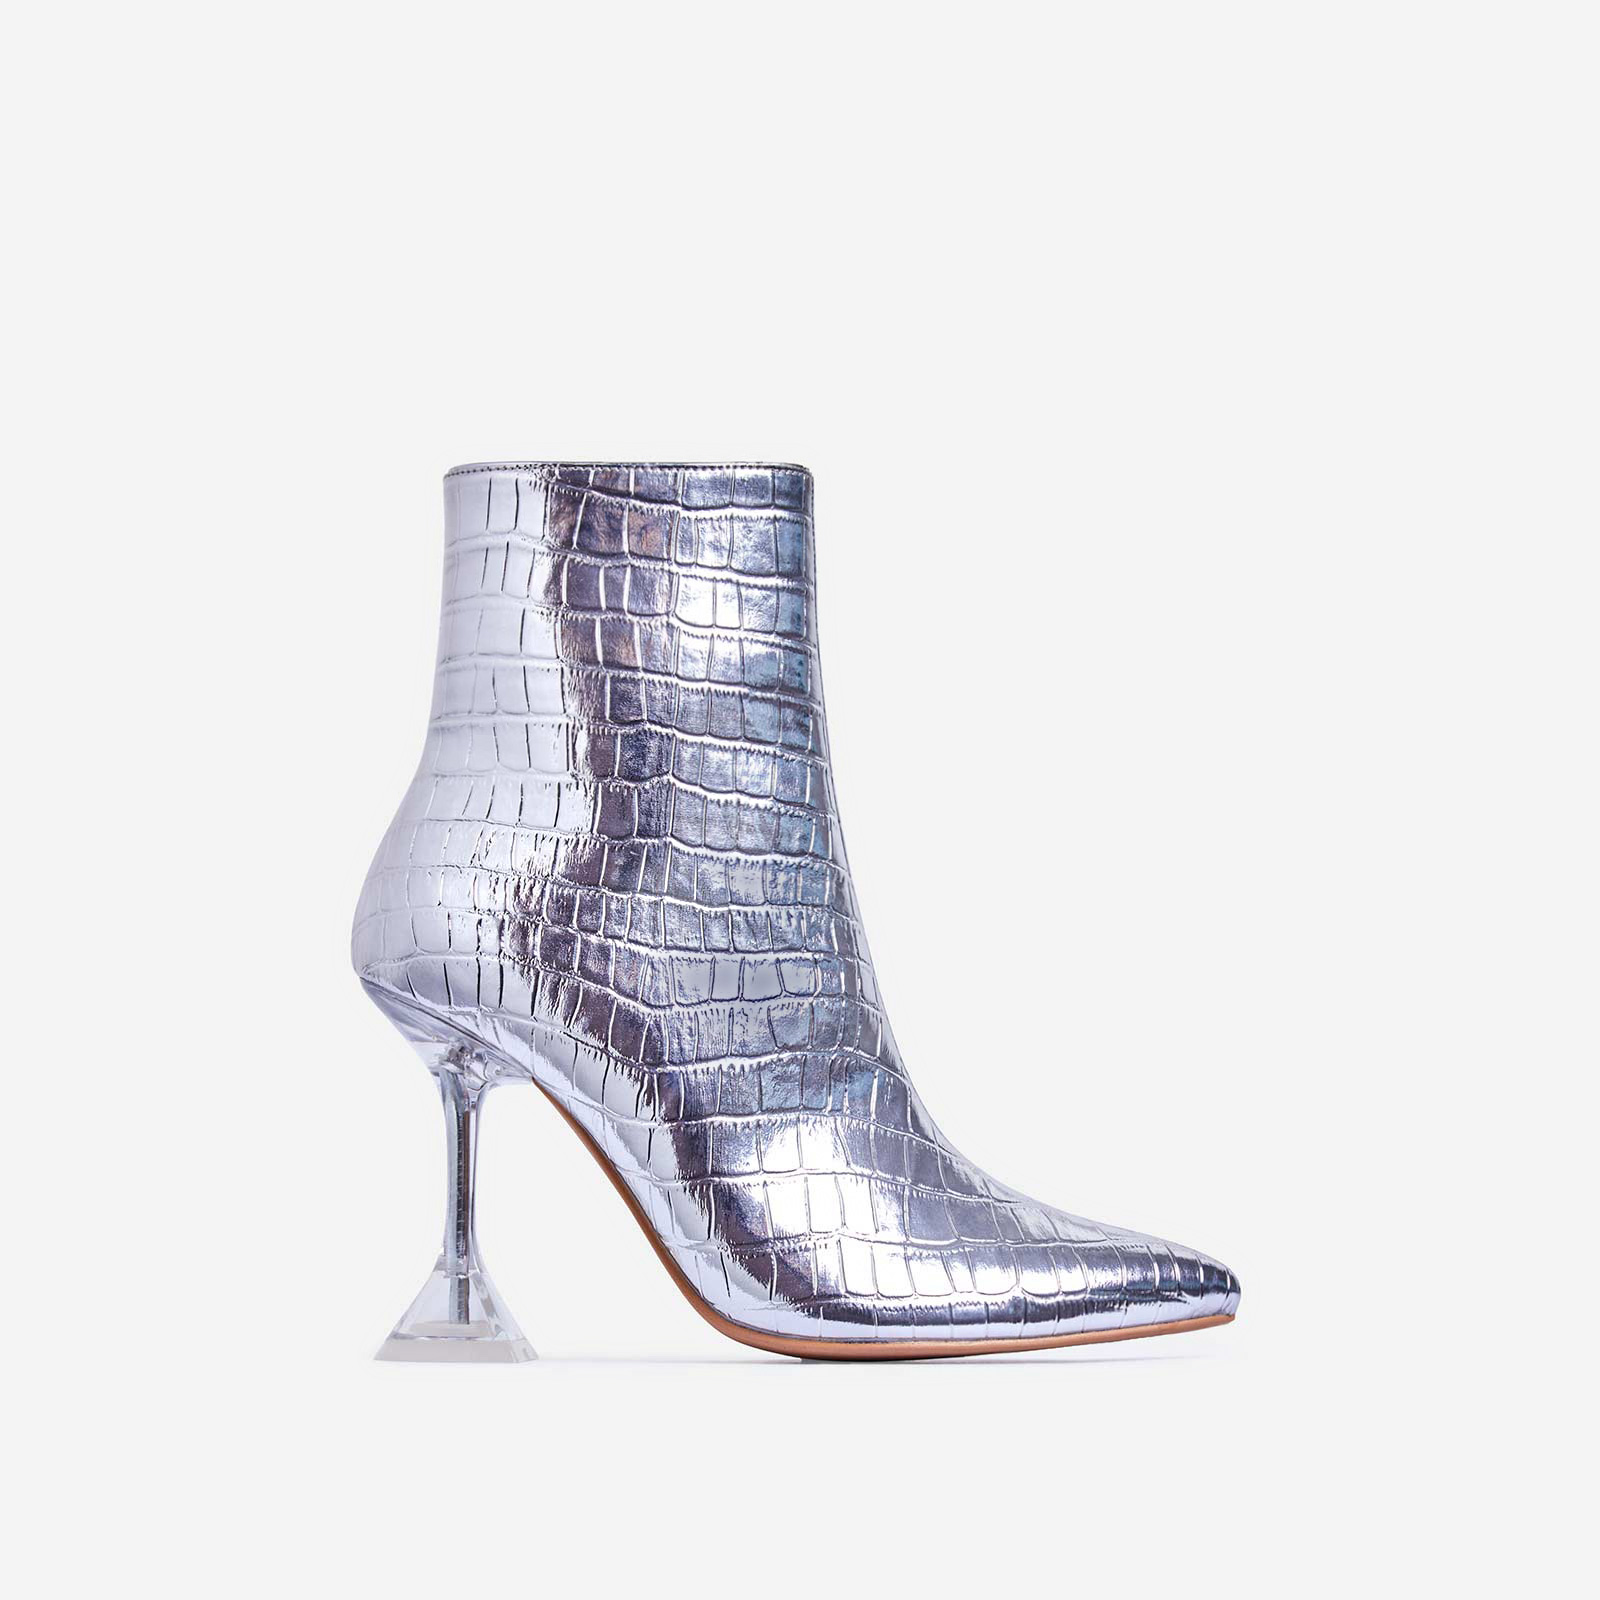 Bacardi Clear Perspex Pyramid Heel Ankle Boot In Silver Croc Print Faux Leather